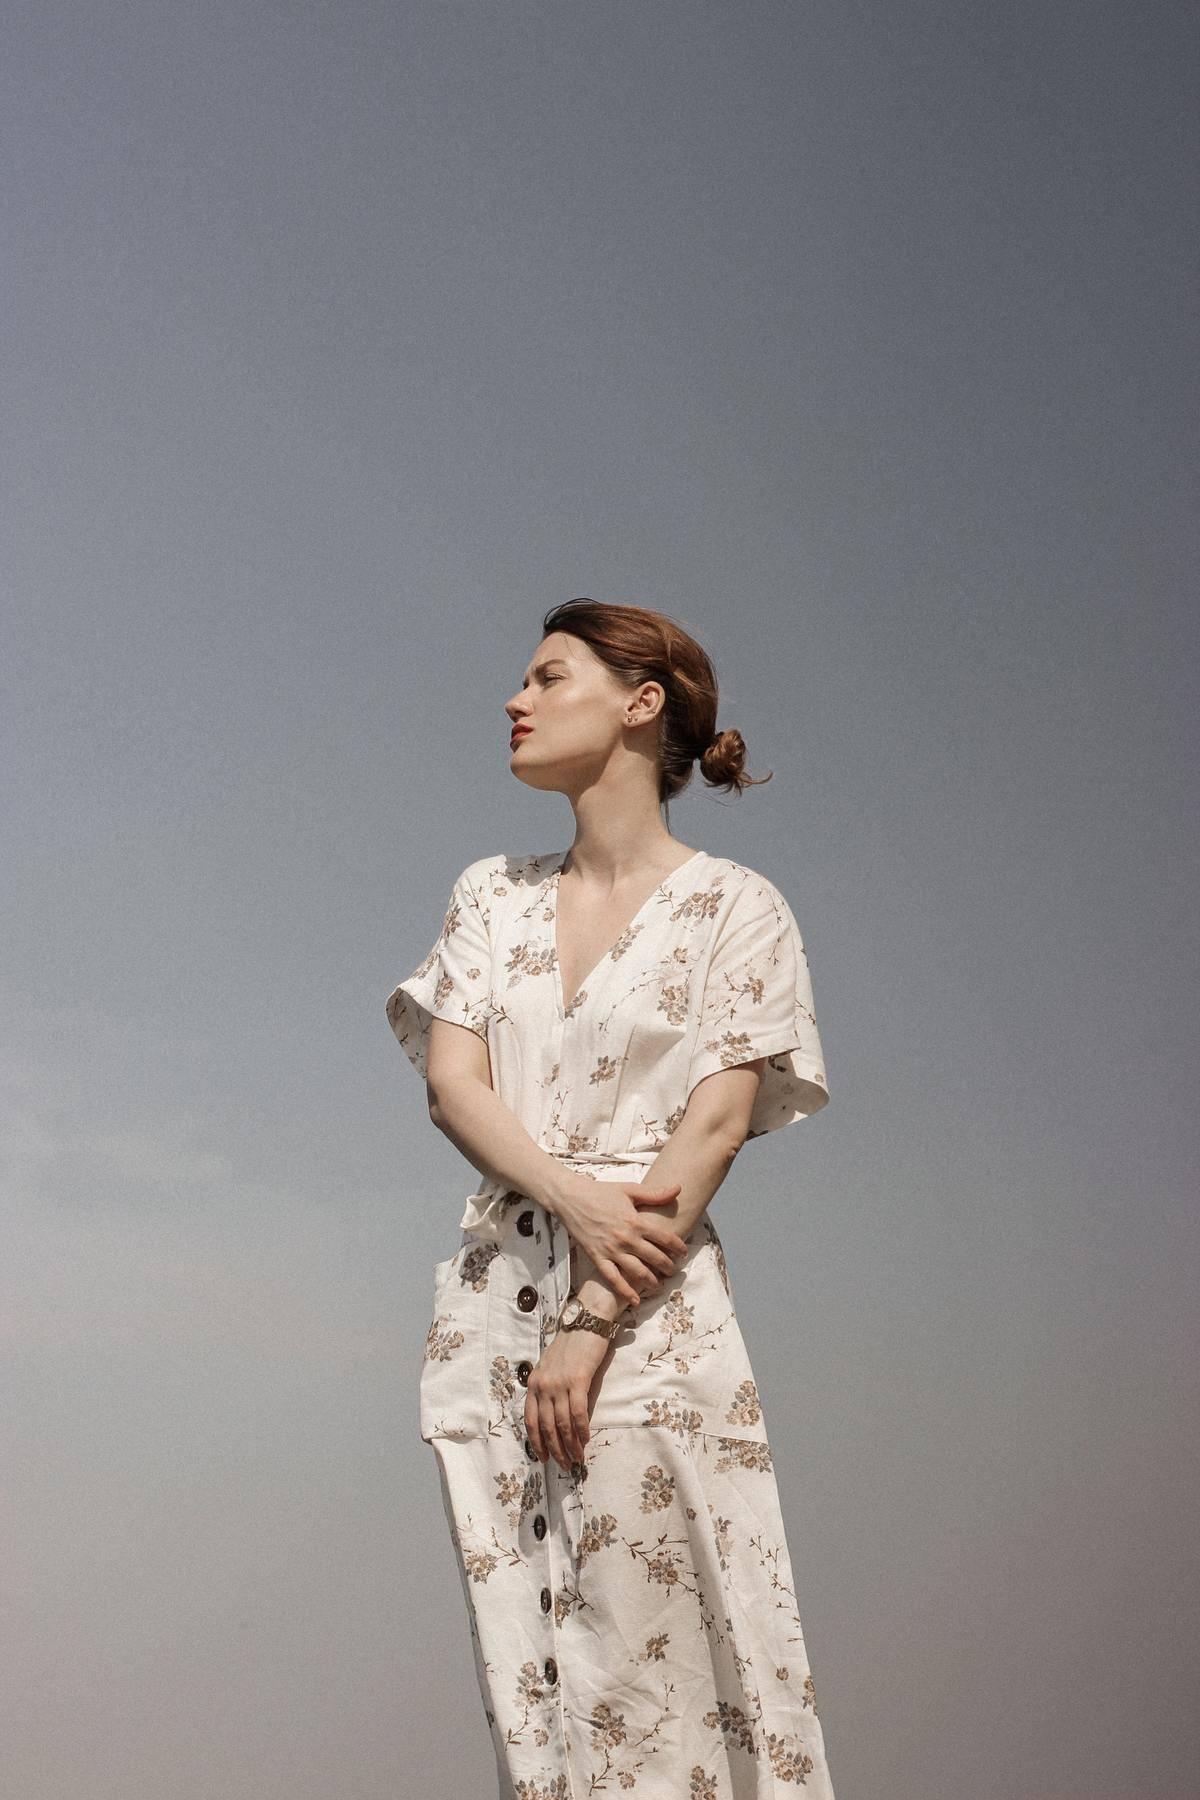 a woman in a flower dress standing looking in the distance